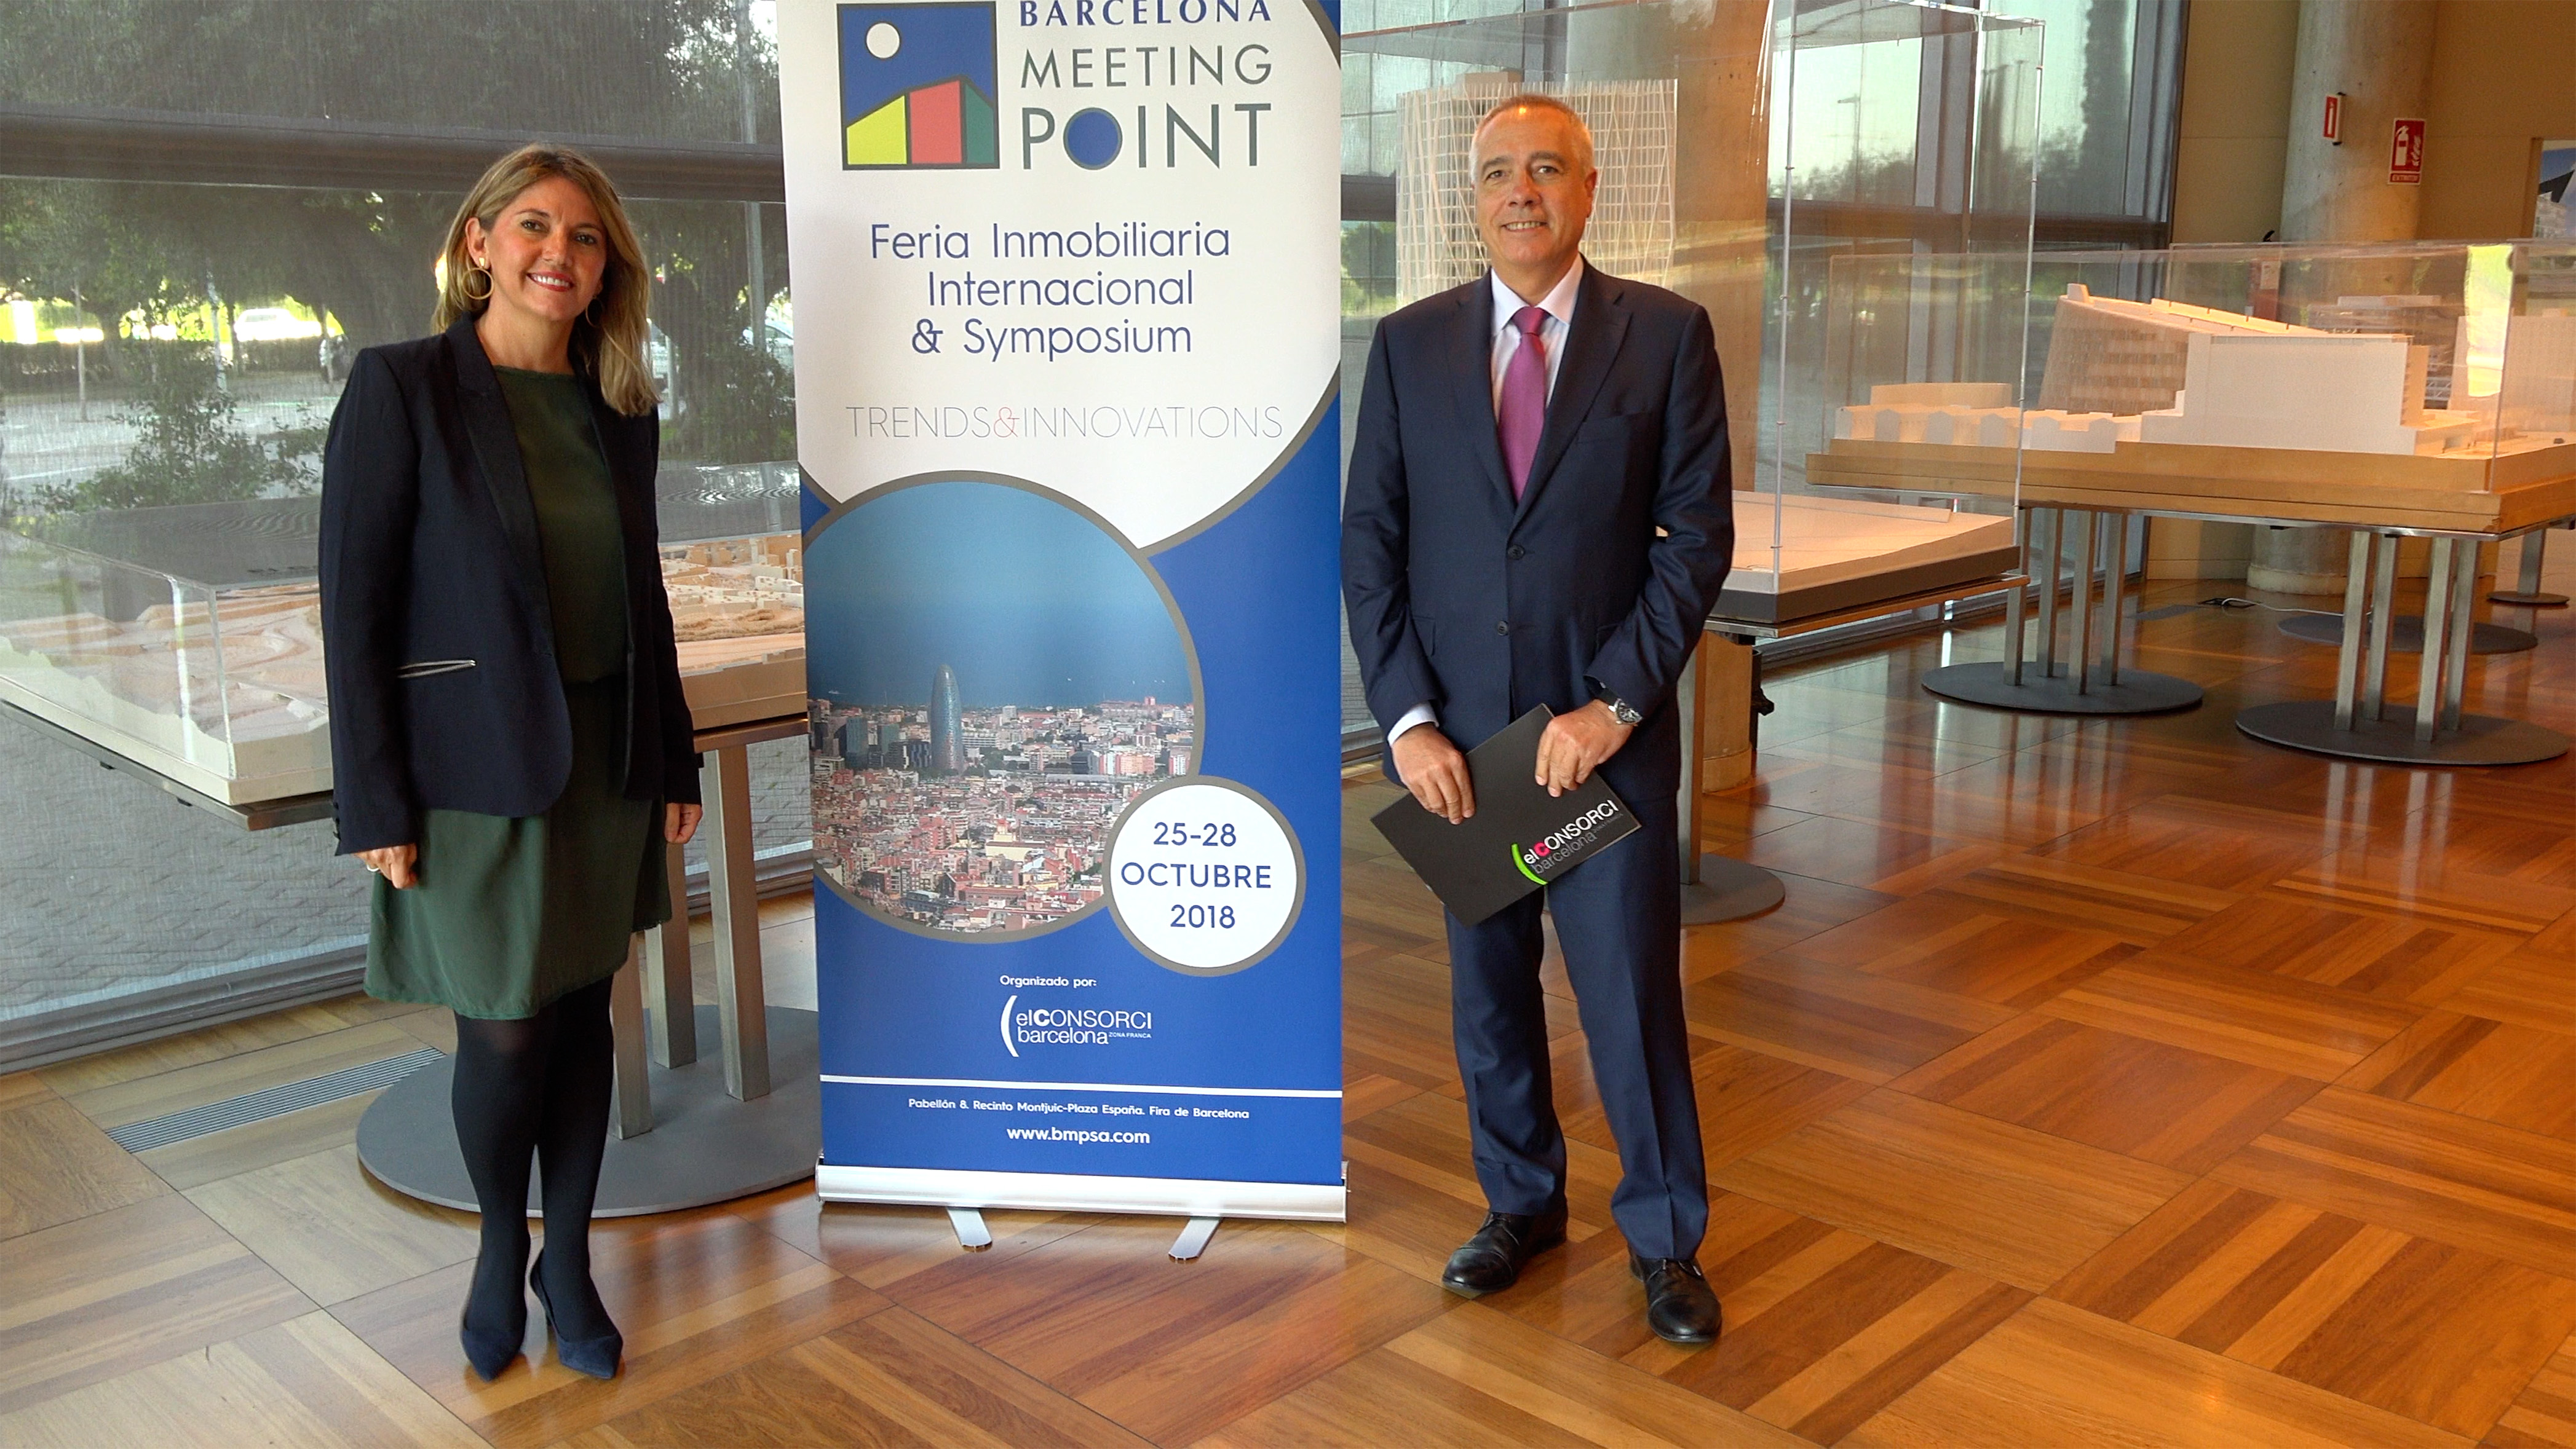 barcelona meeting point presenta su 22ª edición con un enfoque más social y sostenible